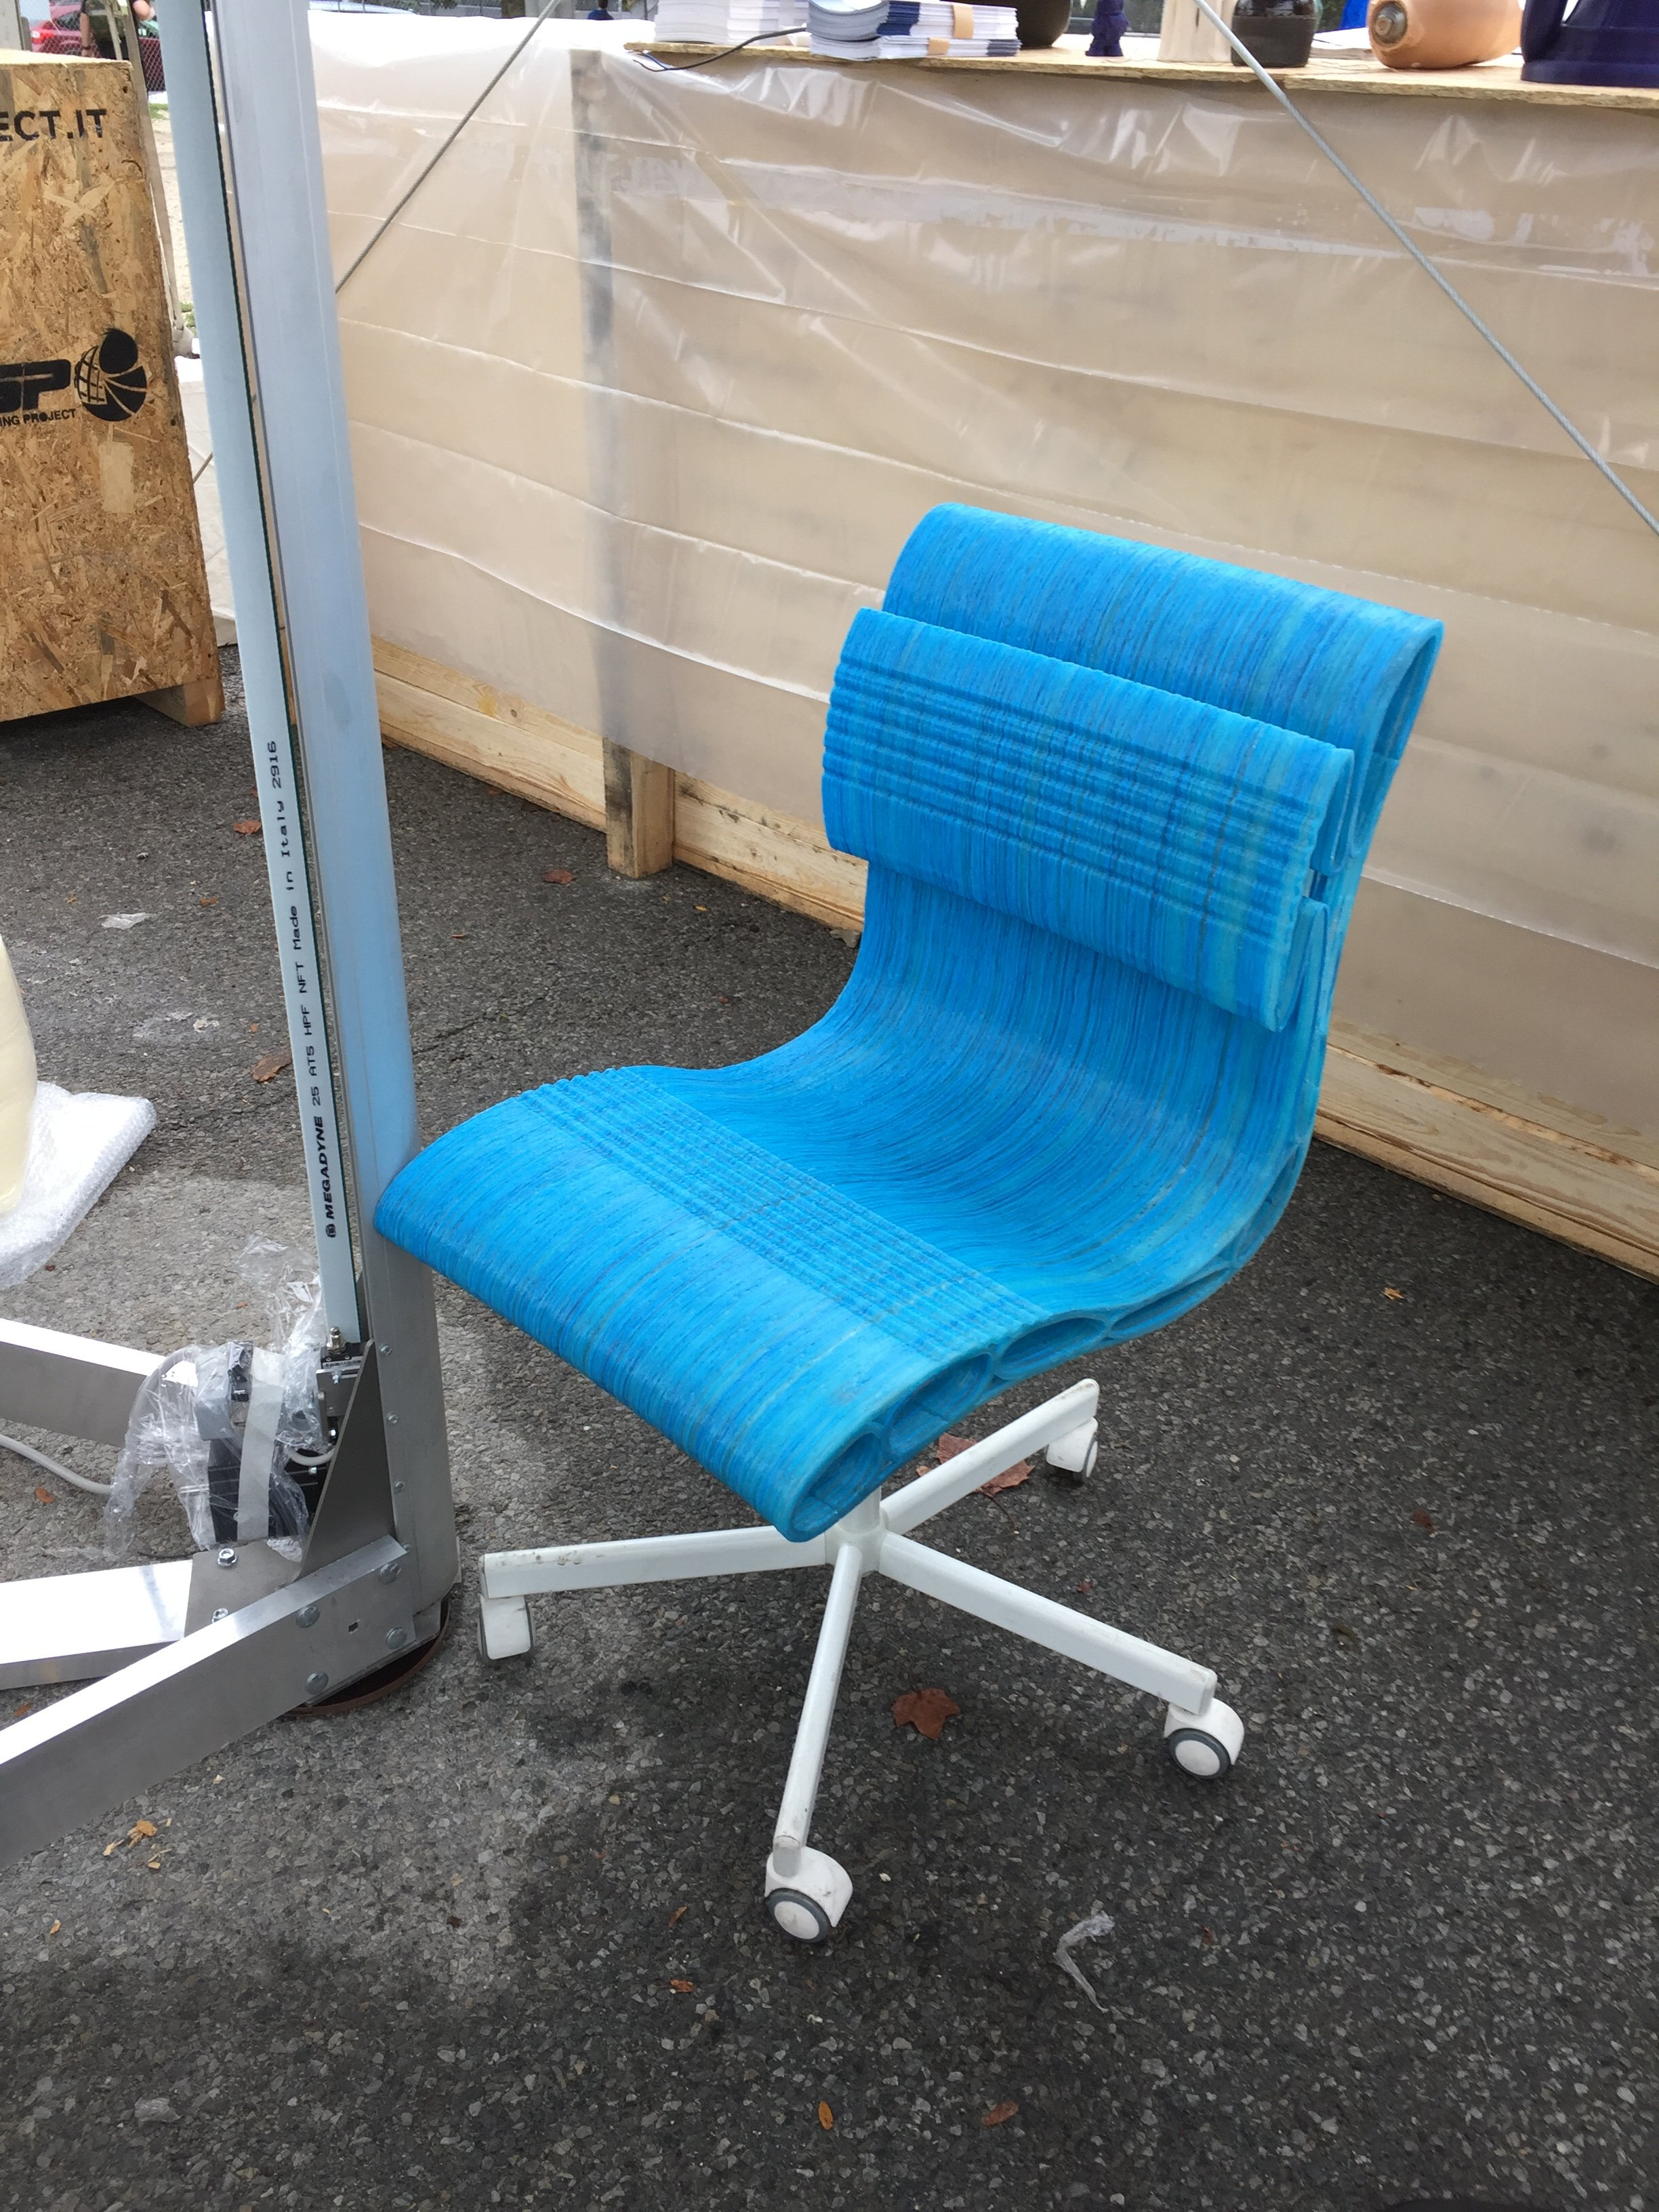 3-D Printed Chair